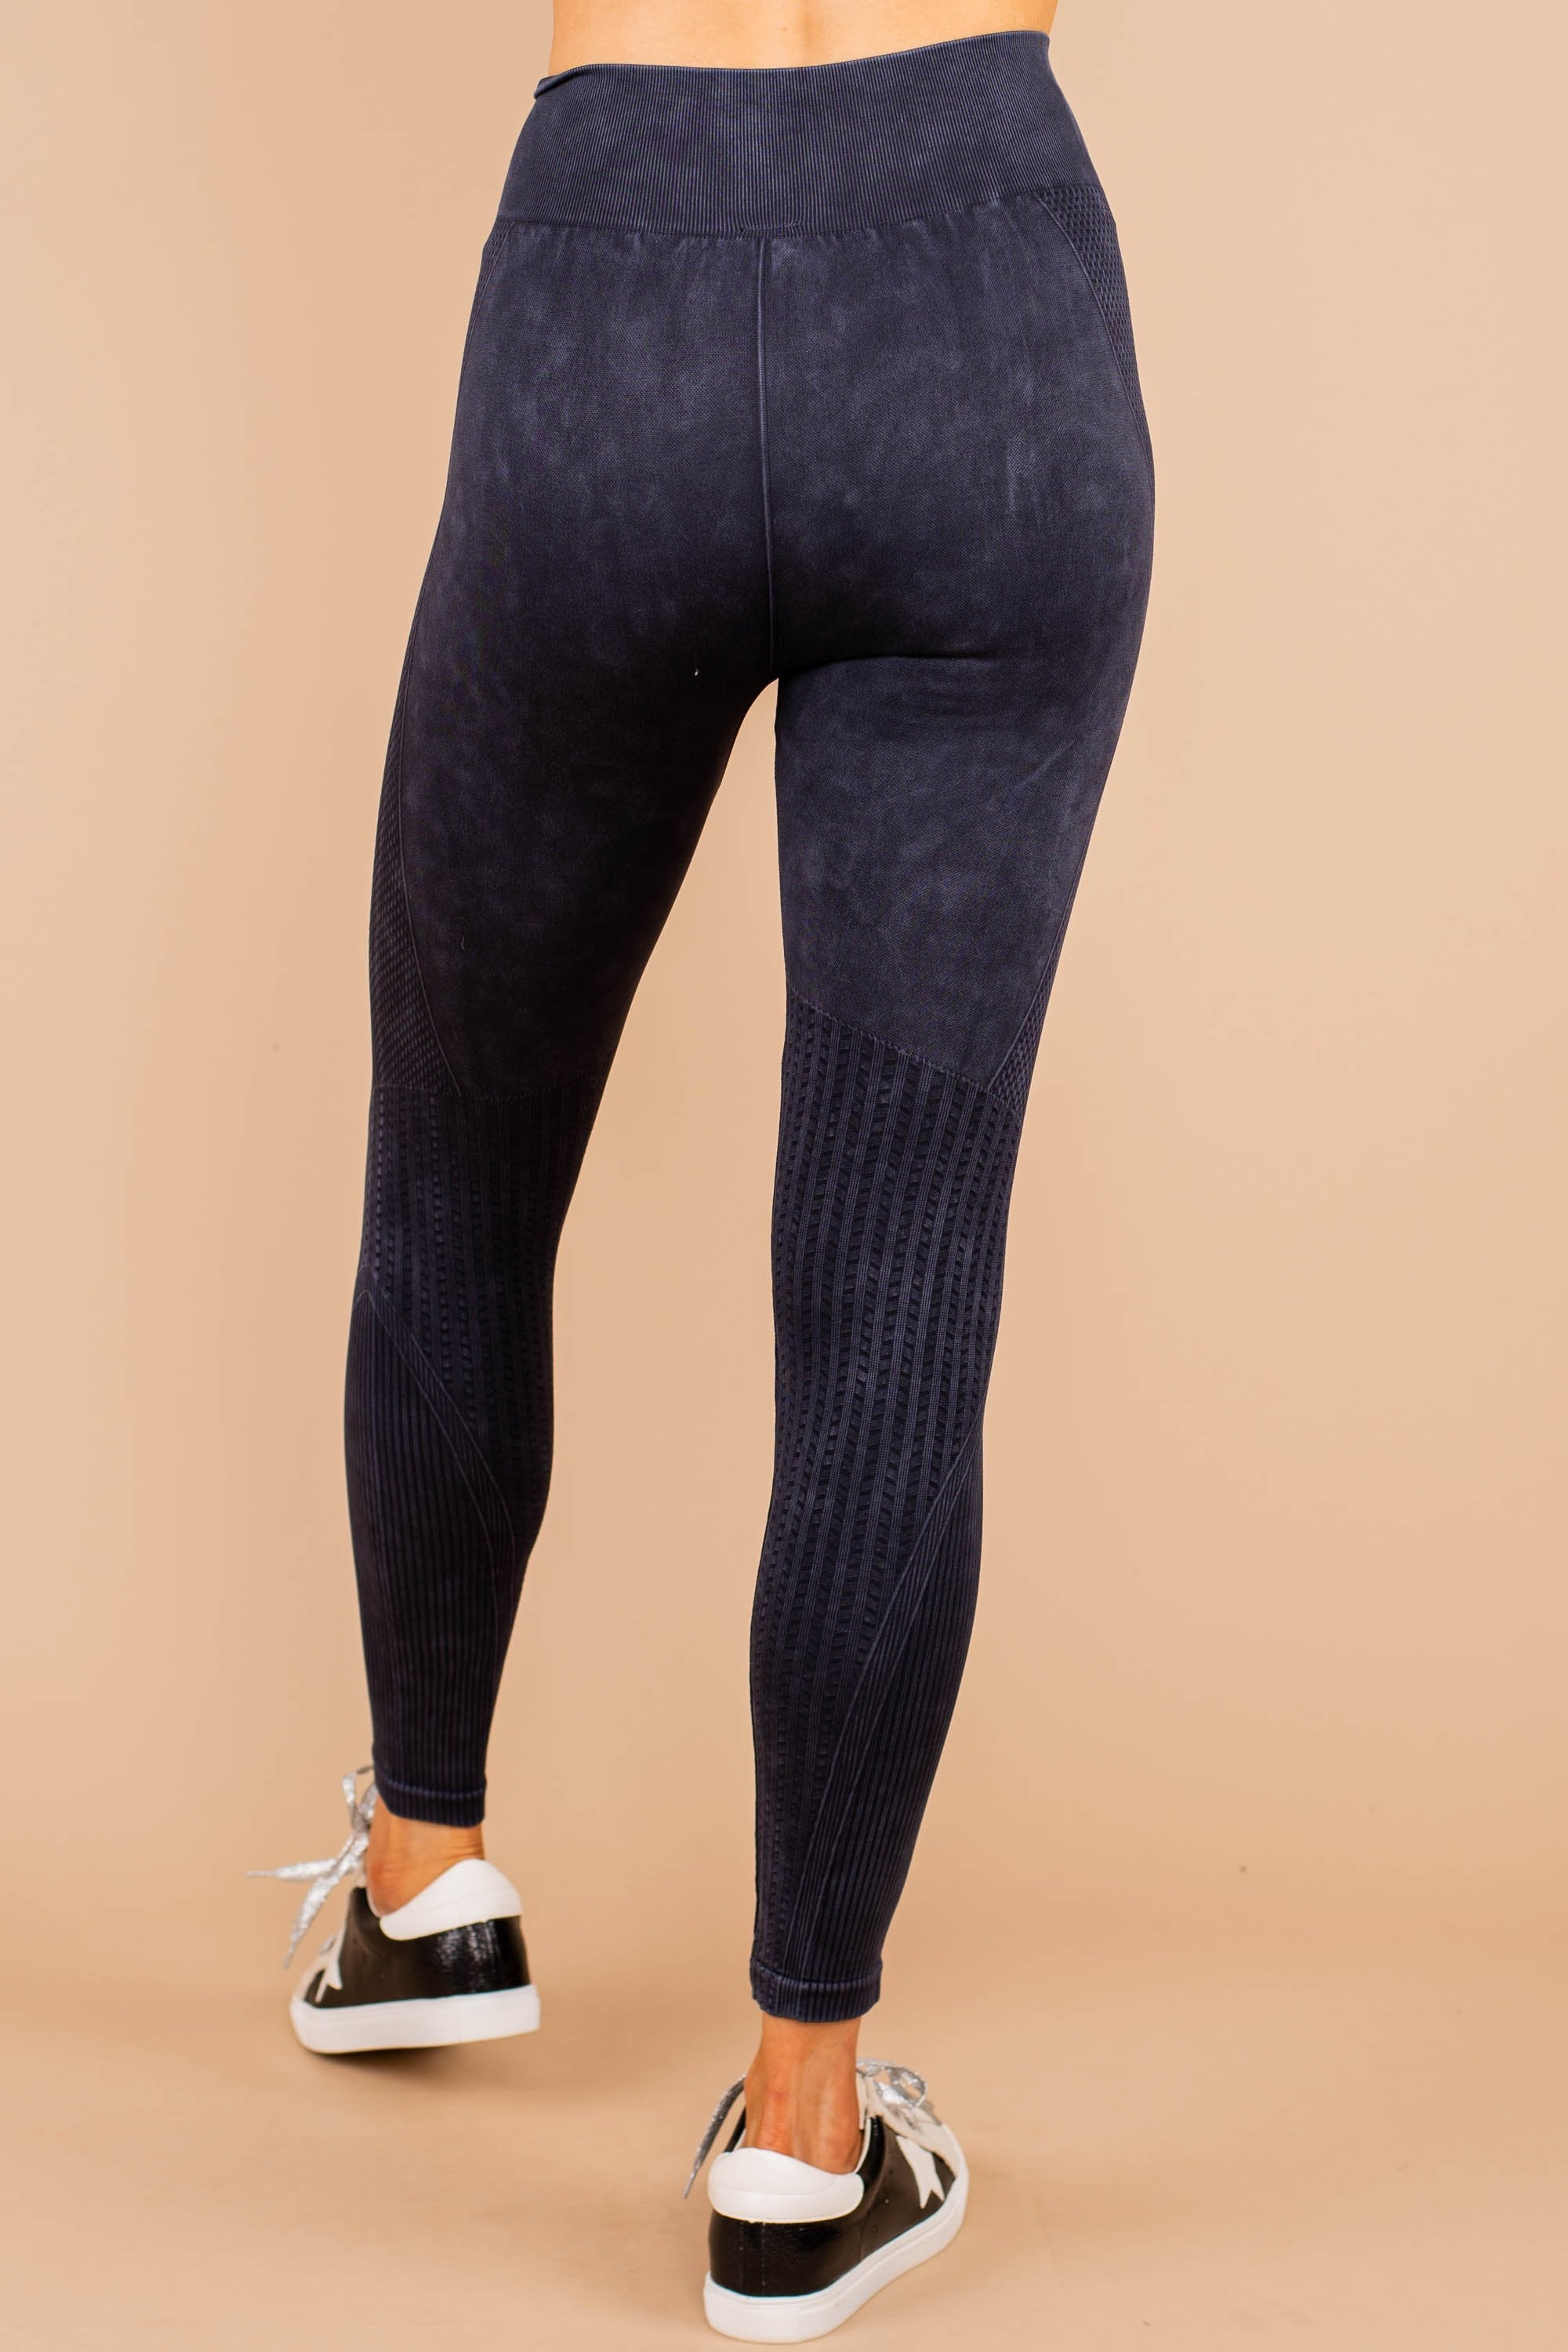 black ribbed leggings, leggings, comfy, black, stone wash, high rise